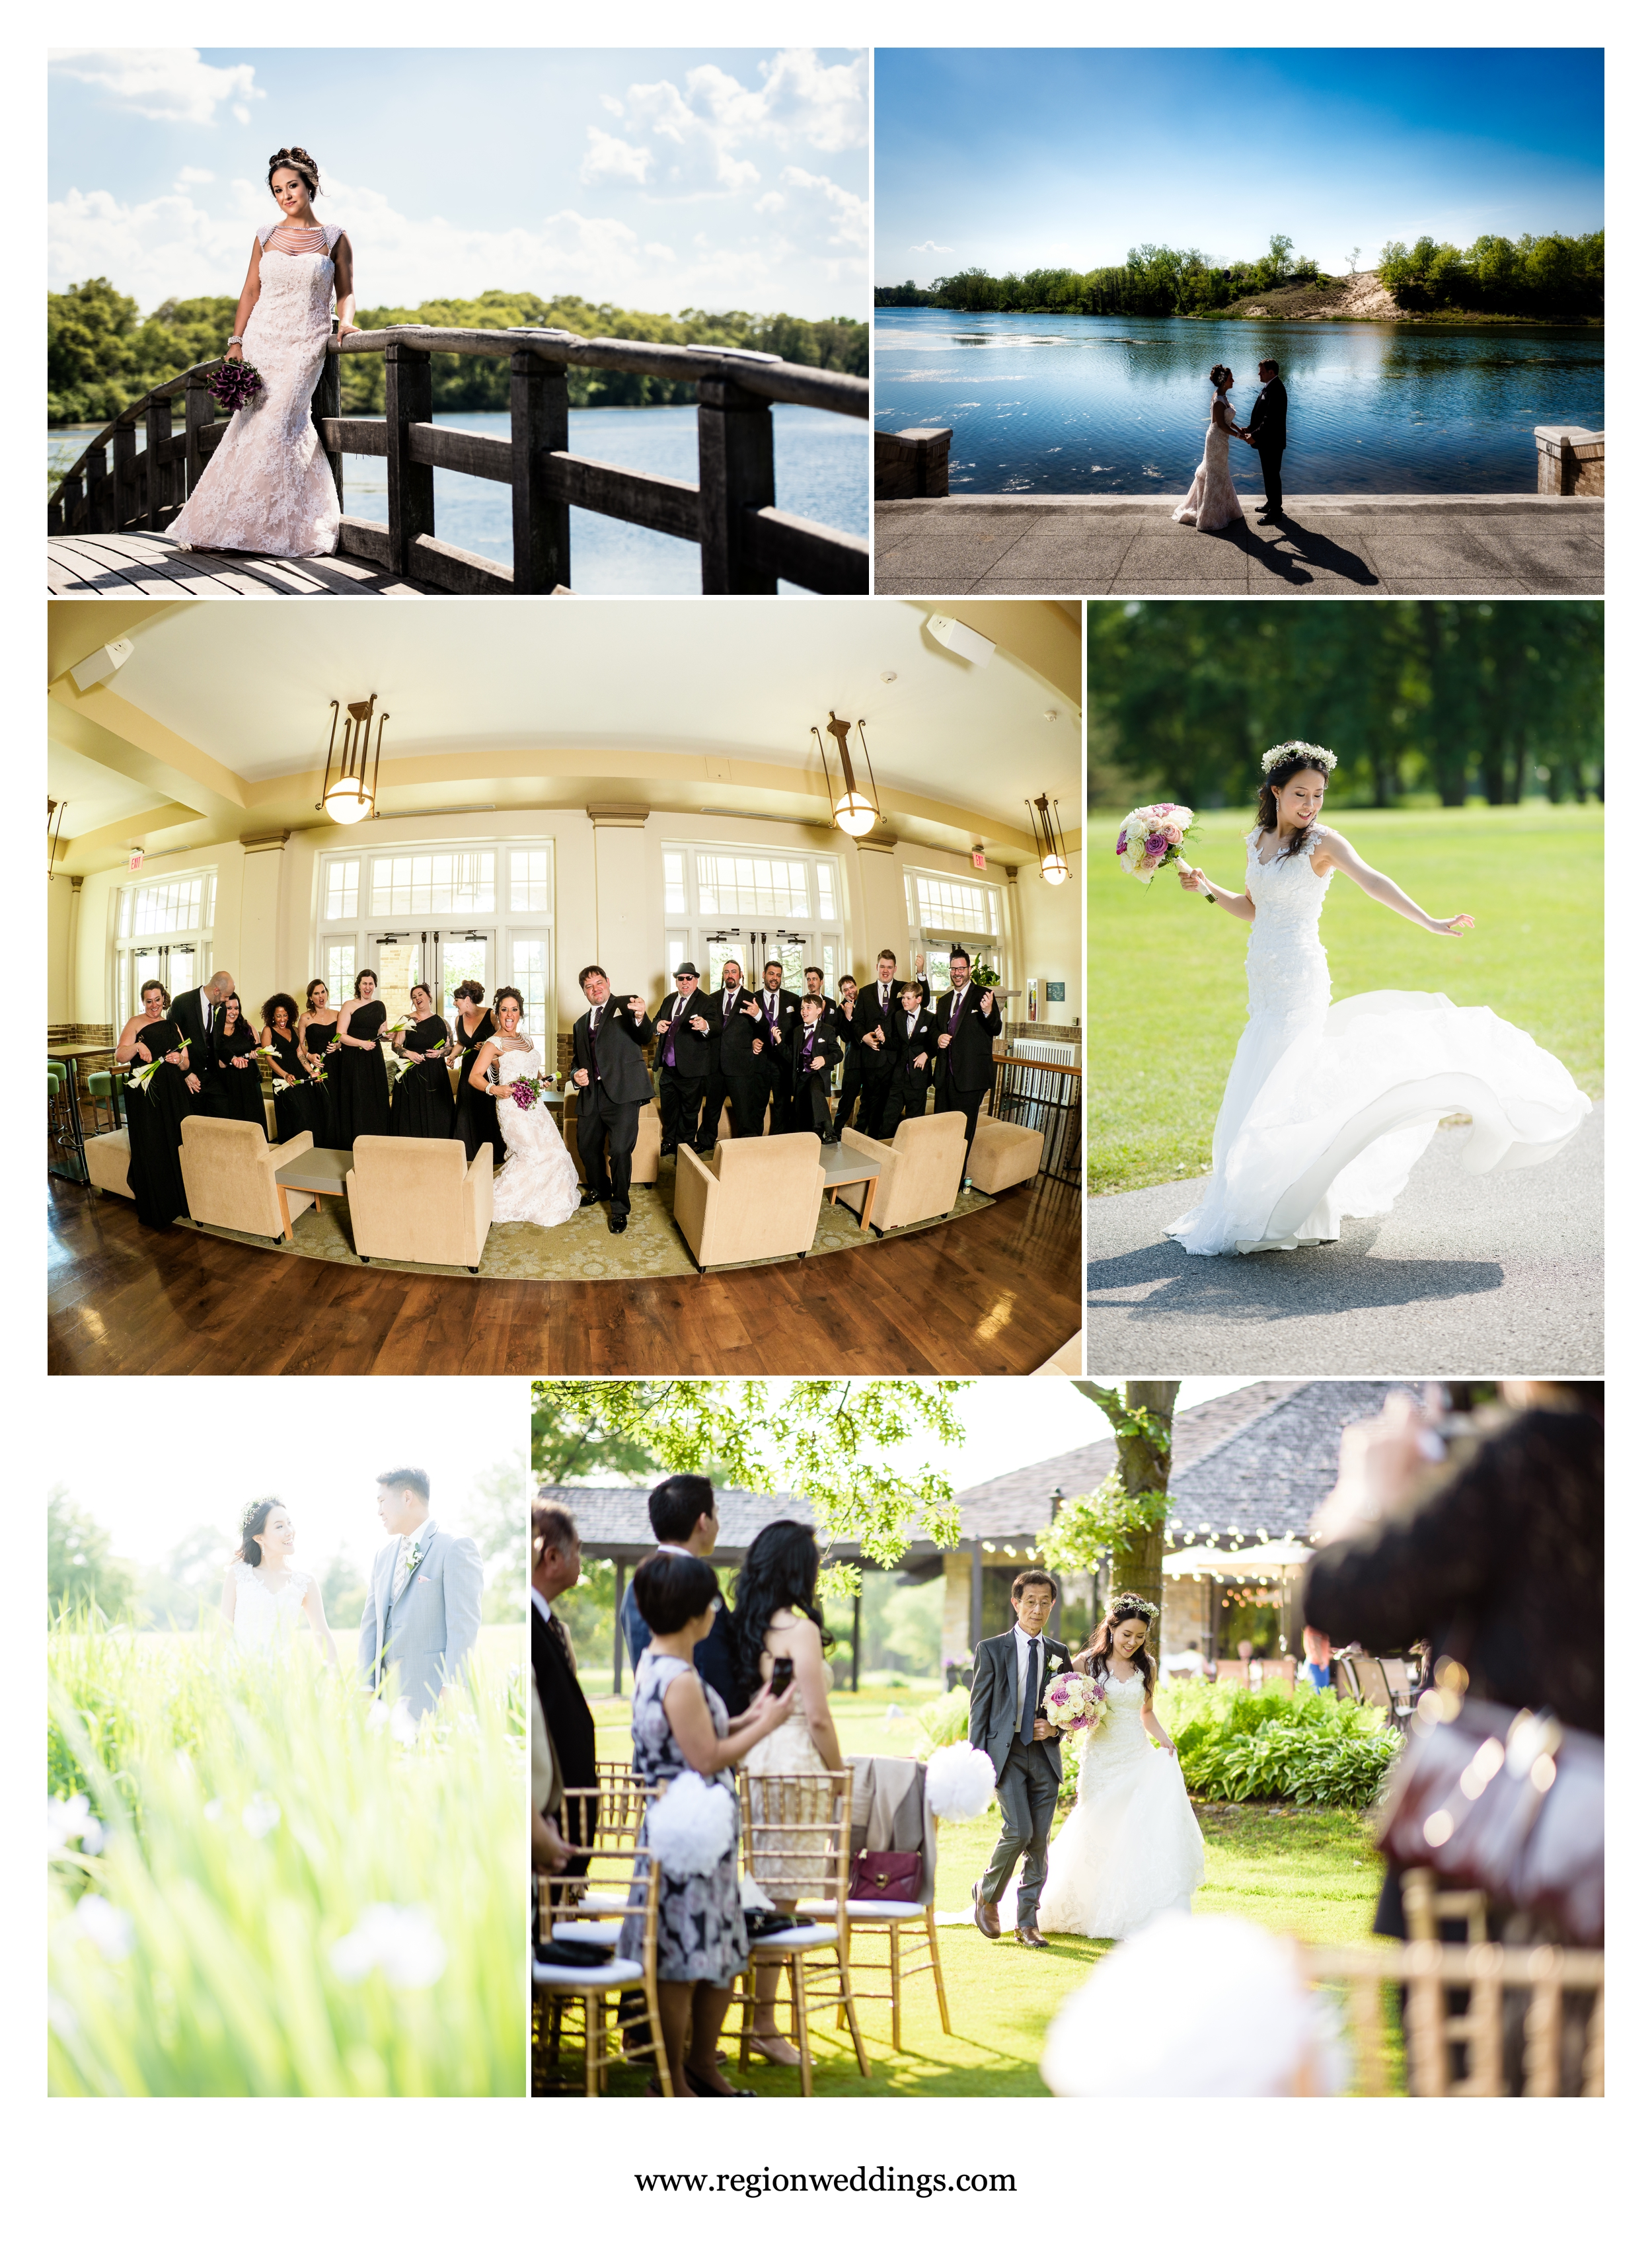 Late Spring weddings at Marquette Park Pavilion and Briar Ridge Country Club.